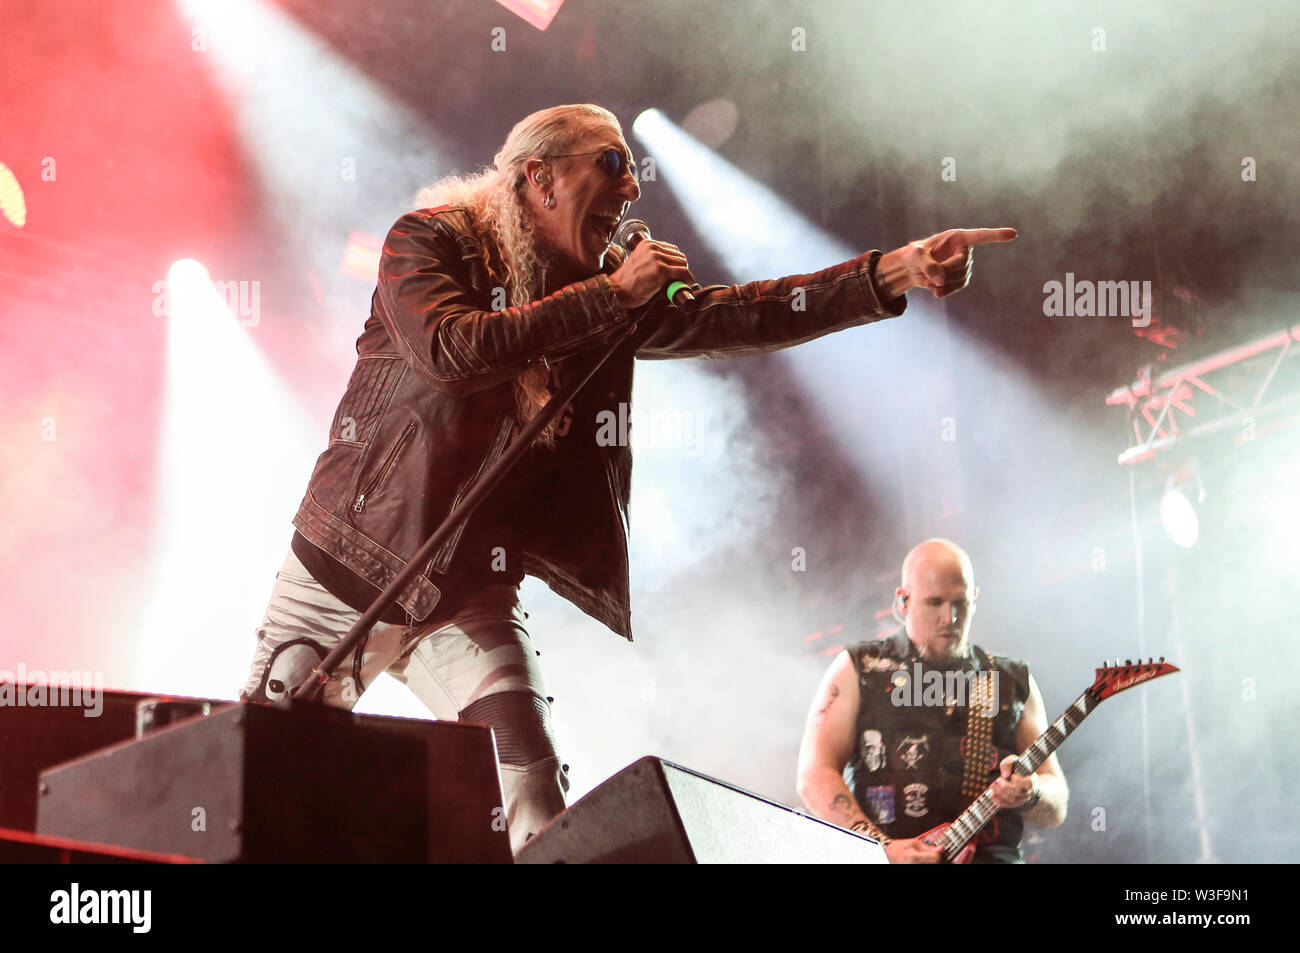 Kvinesdal, Norway - July 13th, 2019. The American vocalist Dee Snider performs a live concert during the Norwegian music festival Norway Rock Festival 2019. (Photo credit: Gonzales Photo - Synne Nilsson). - Stock Image